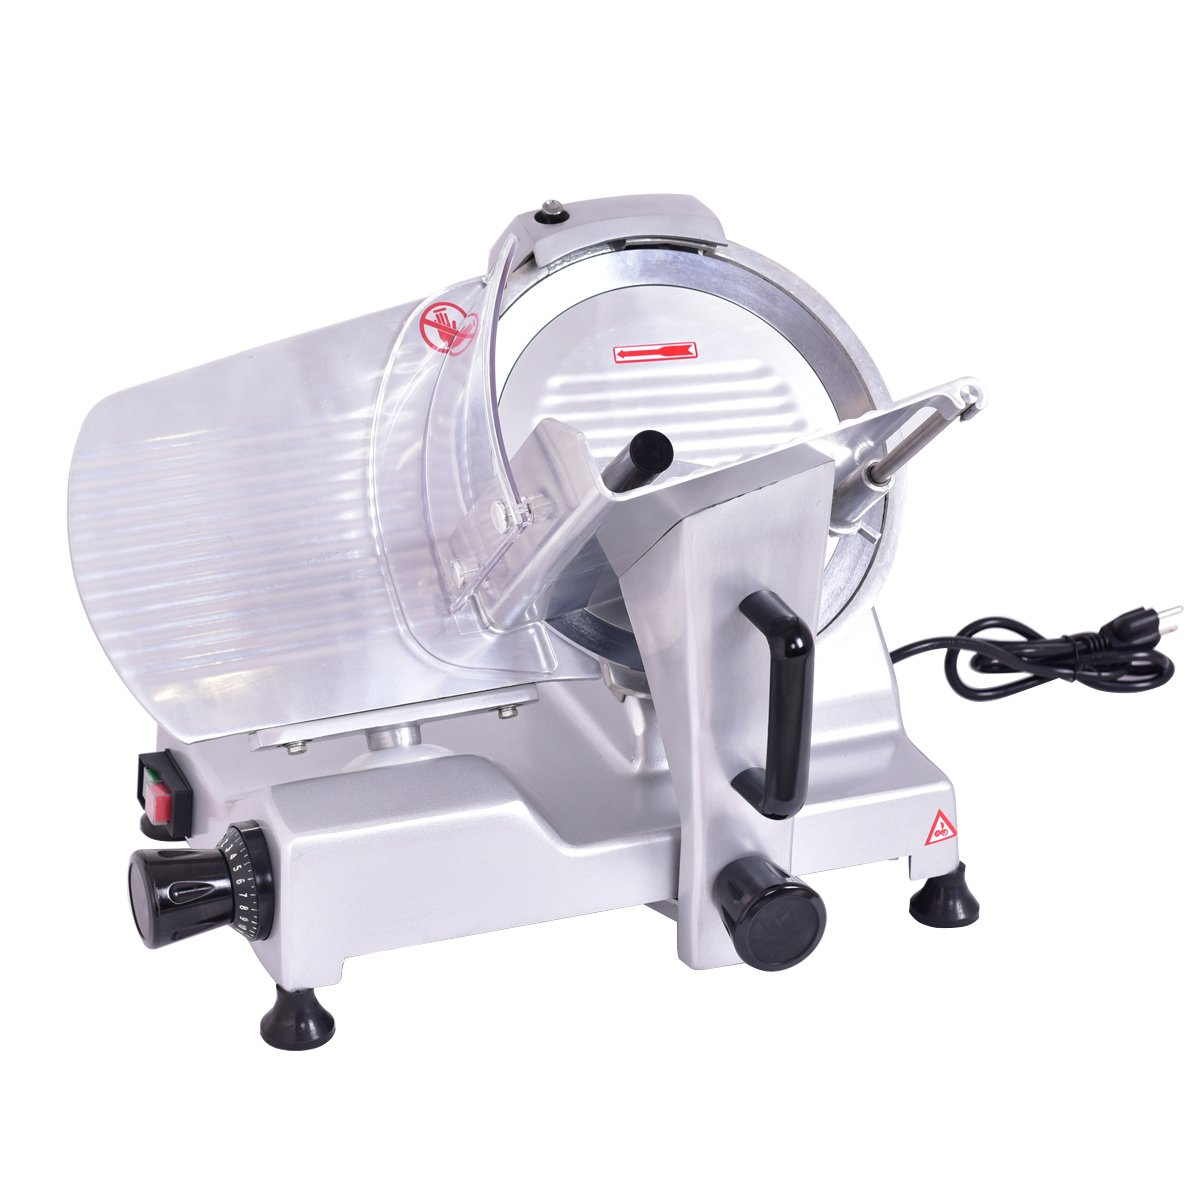 Giantex 10'' Blade Commercial Meat Slicer Deli Meat Cheese Food Slicer Industrial Quality